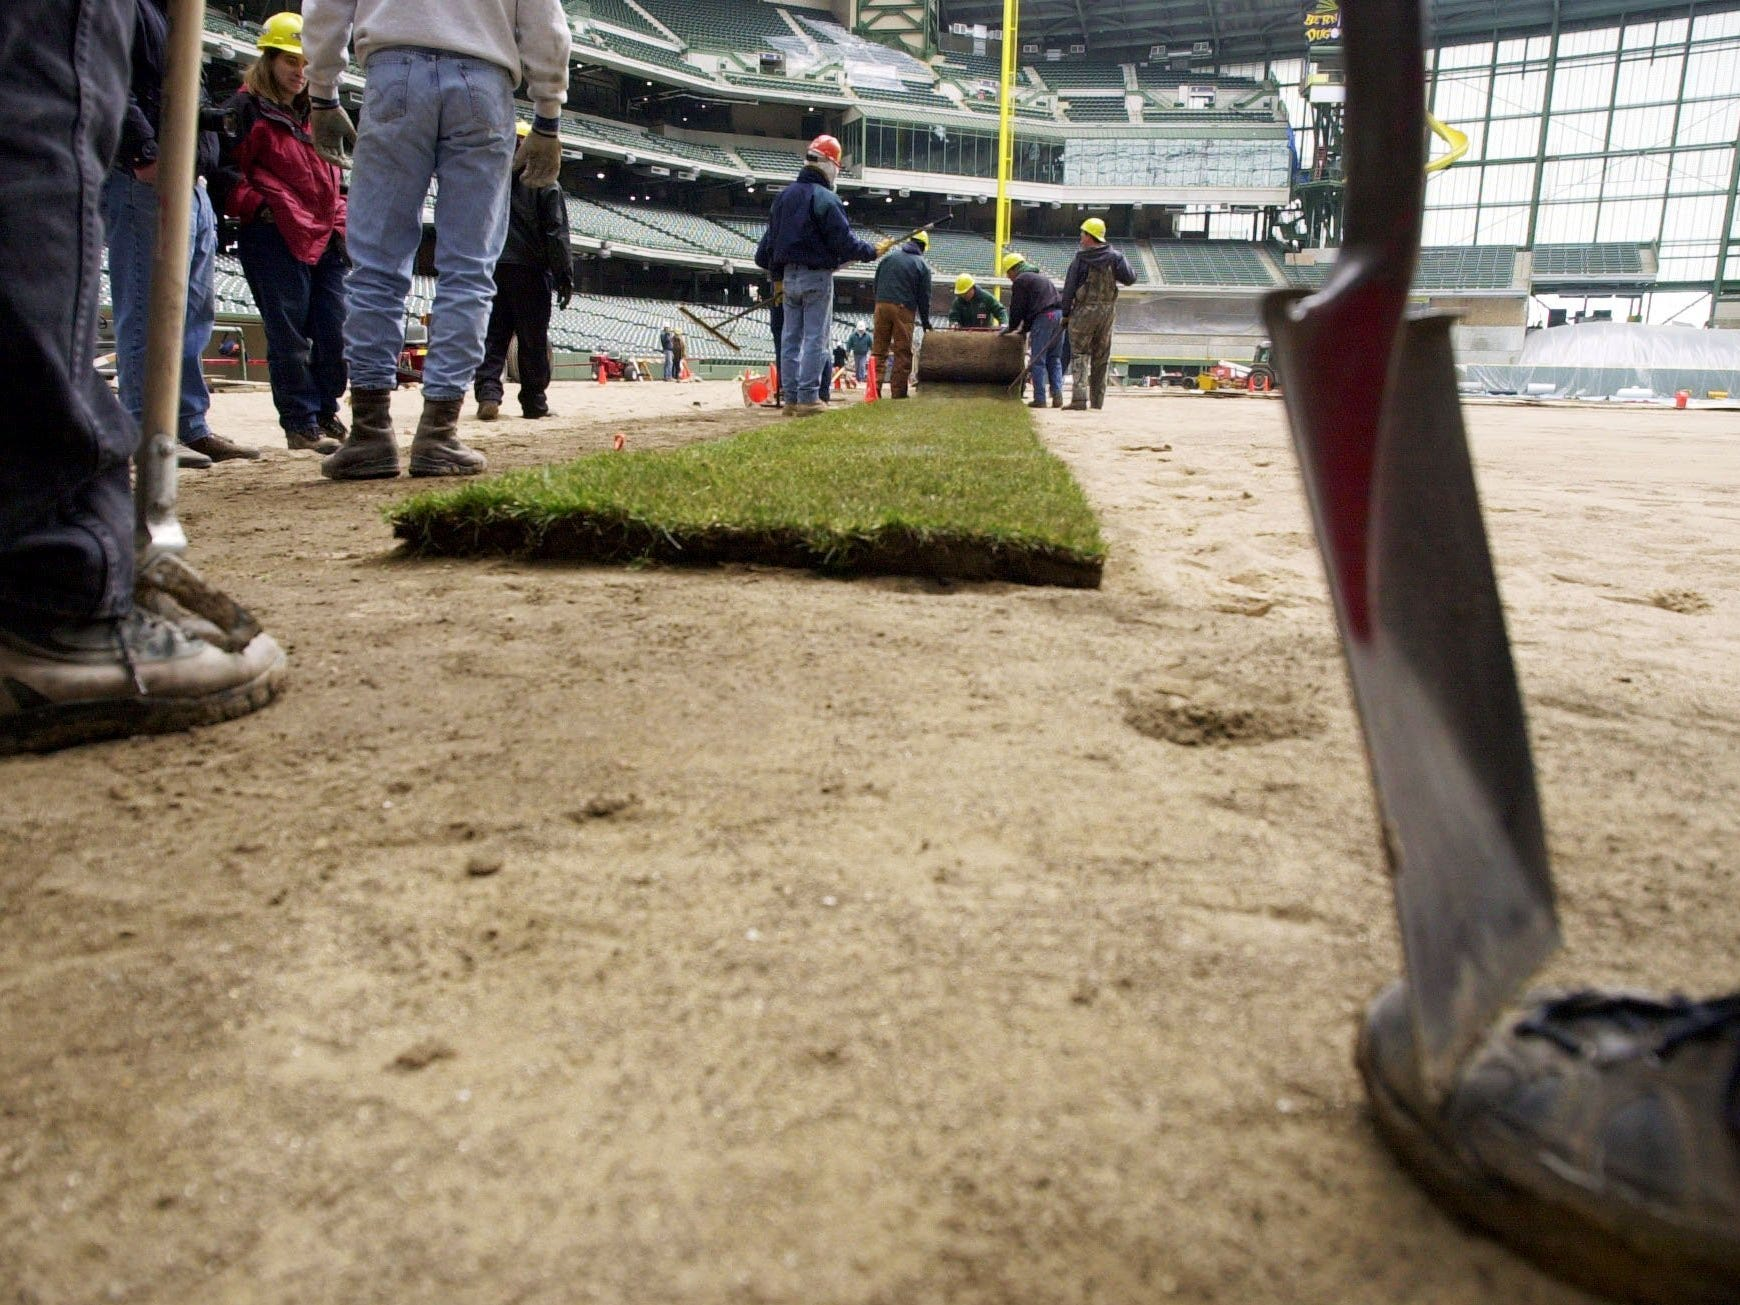 Workers lay the first roll of sod in left field of Miller Park on March 10, 2001, in Milwaukee. Miller Park, the new home of the Milwaukee Brewers, is scheduled to open on April 6 with a game between the Brewers and the Cincinnati Reds. (AP Photo/Milwaukee Journal Sentinel, Jeffrey Phelps)